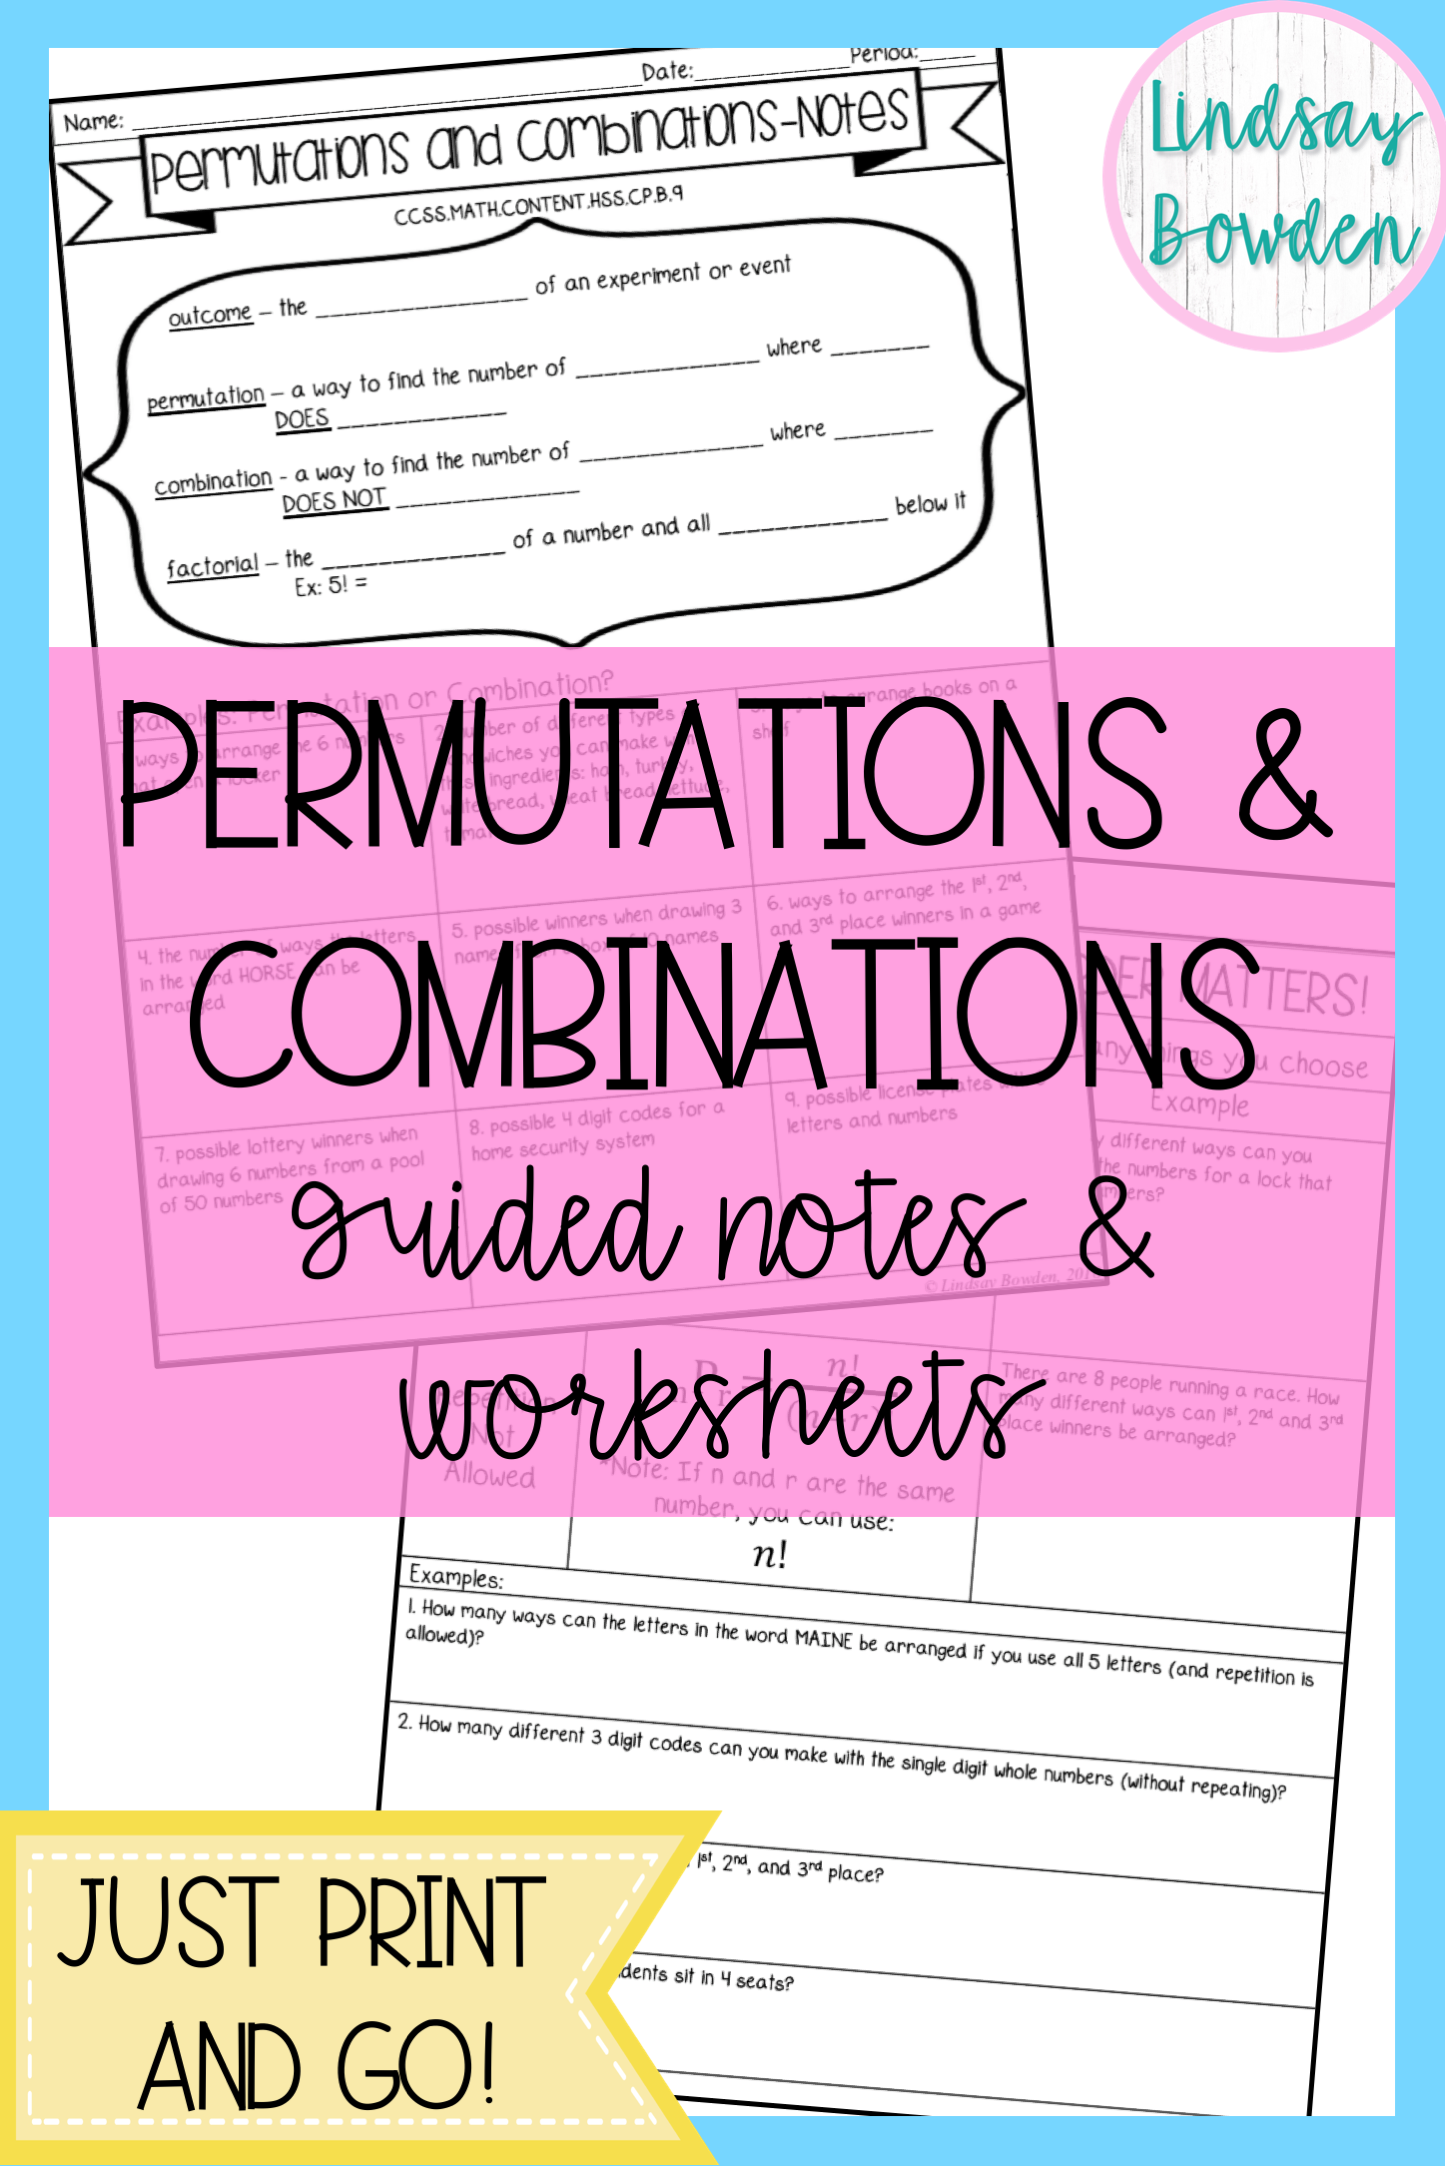 Permutations And Combinations Notes And Worksheets For